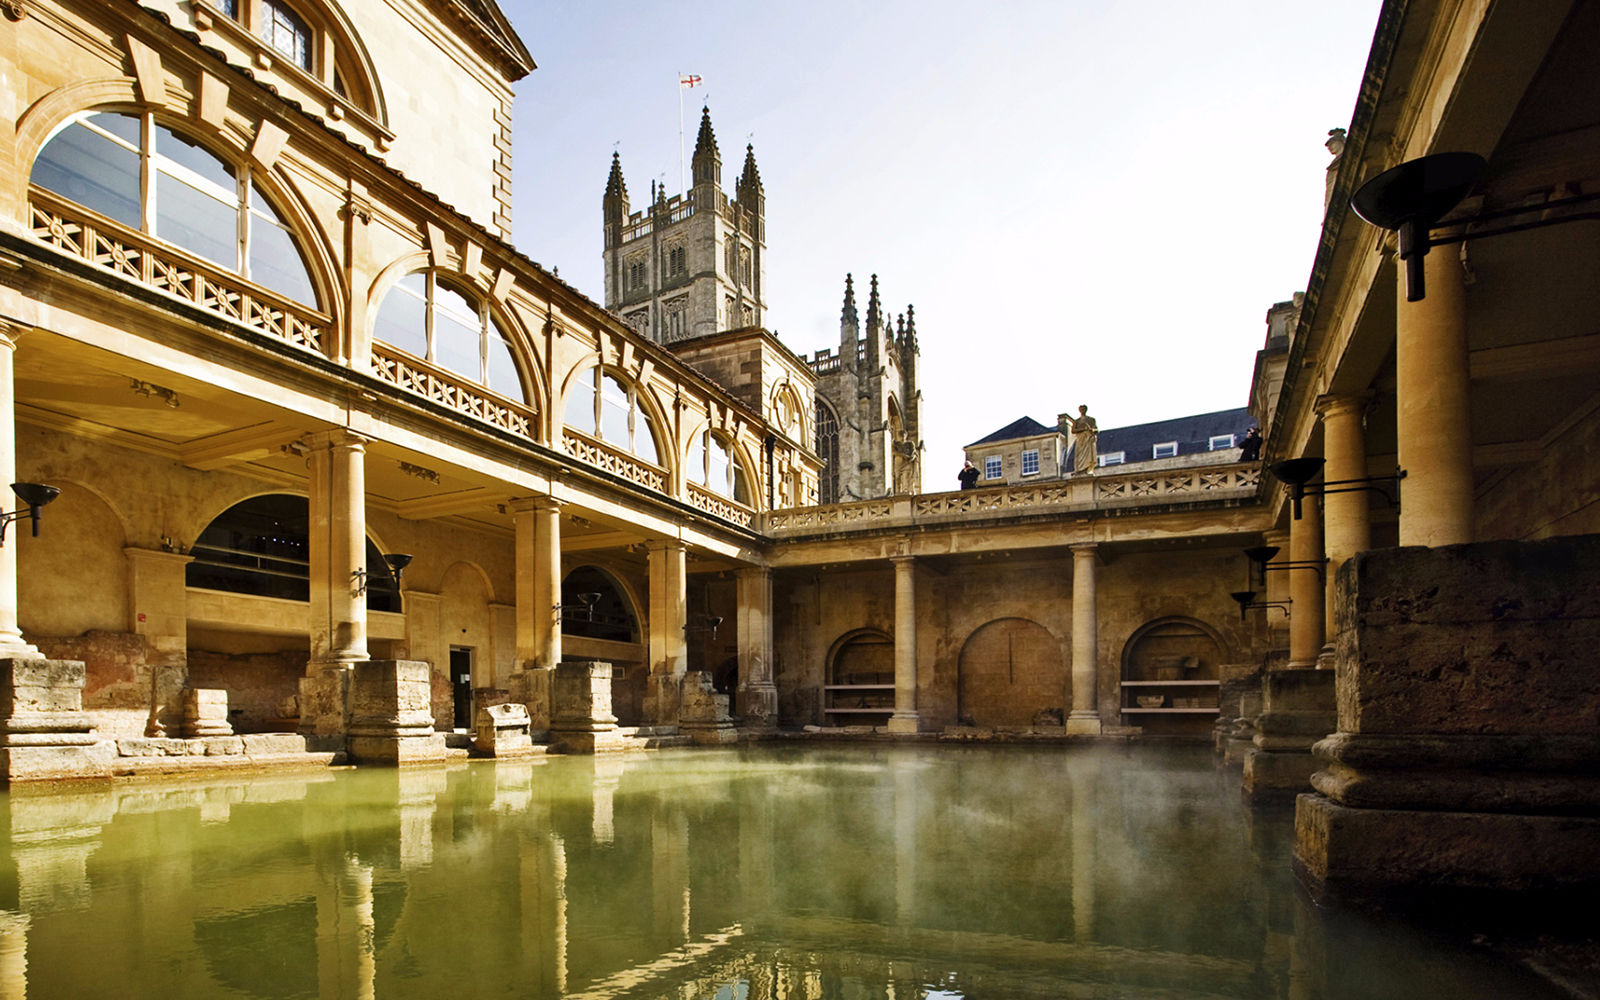 Bath London Pictures Stonehenge And Bath Day Trip From